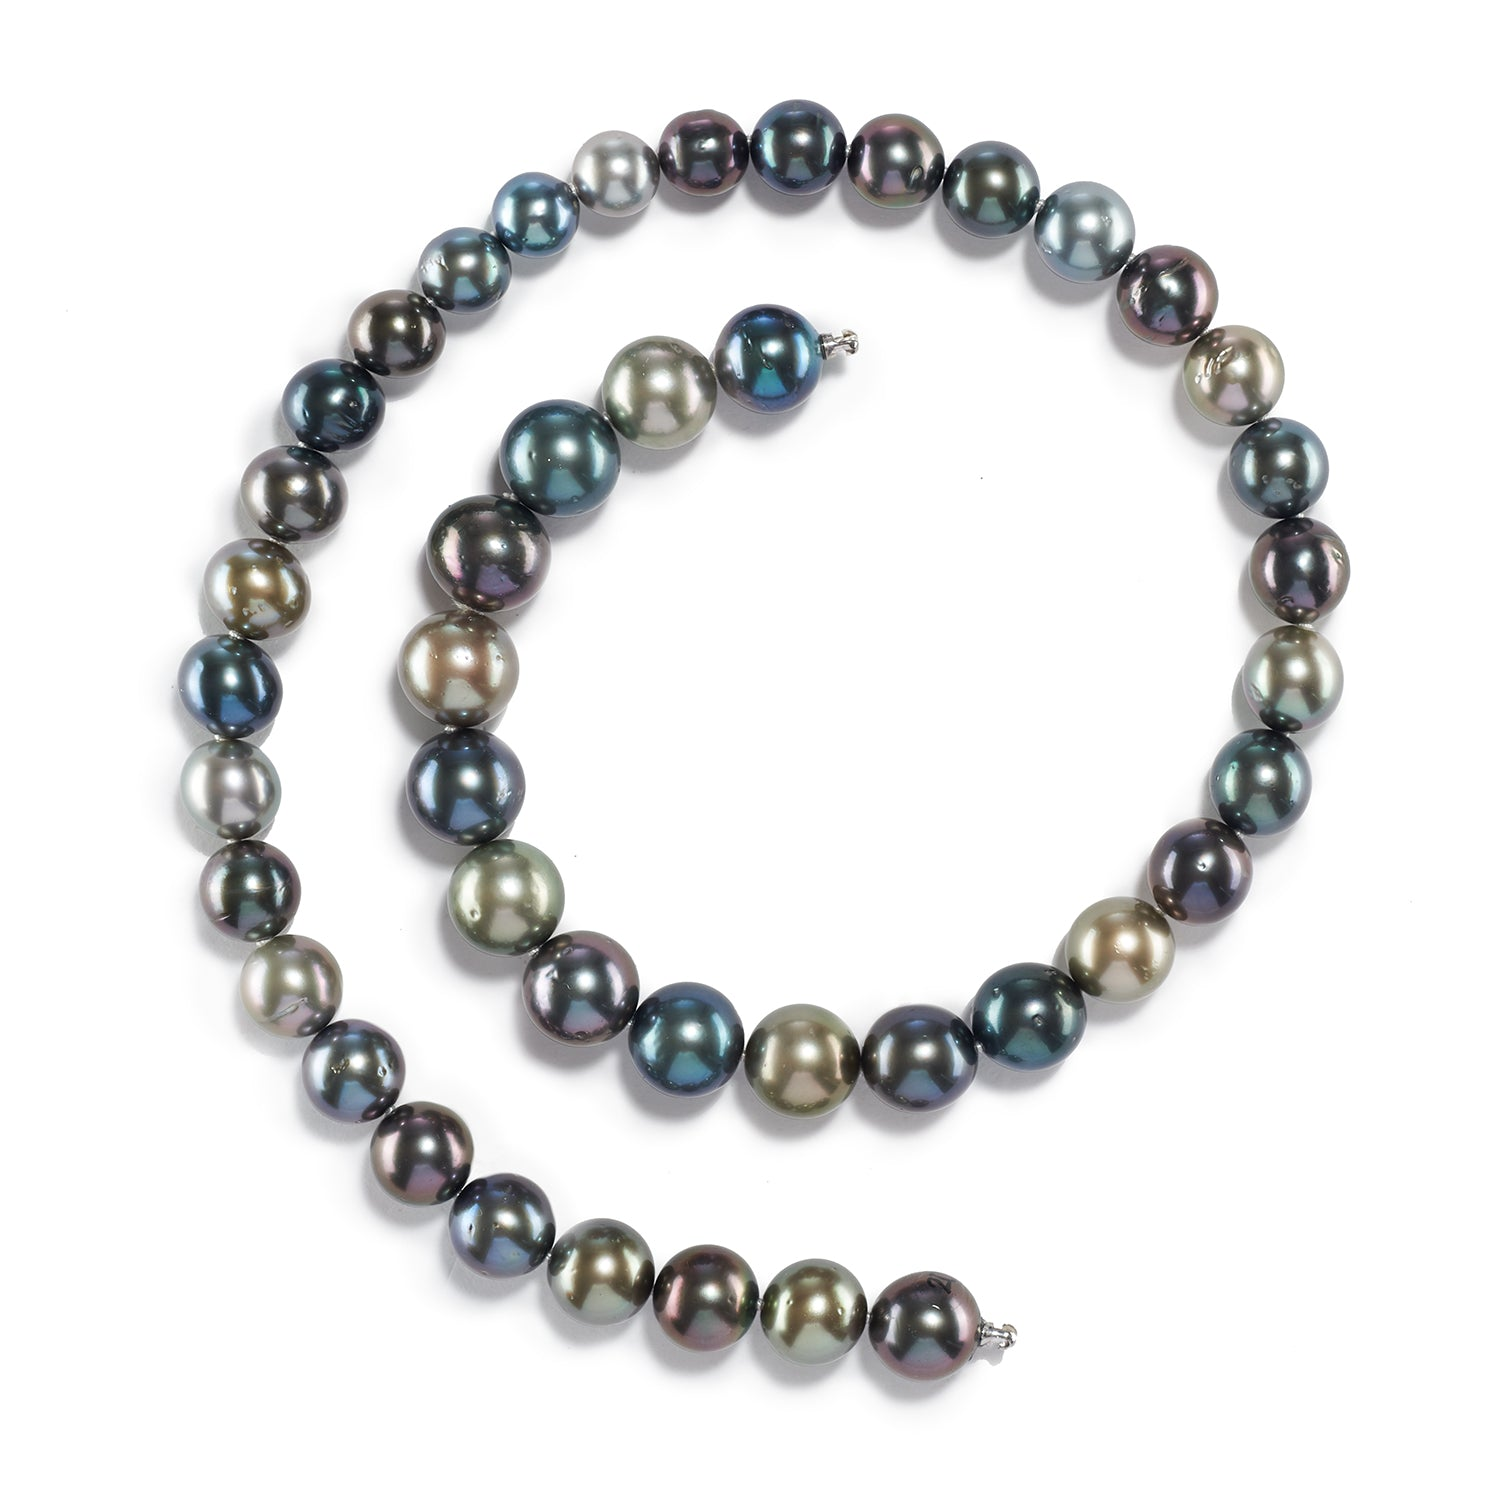 Varied Tahitian Pearl Necklace Strand